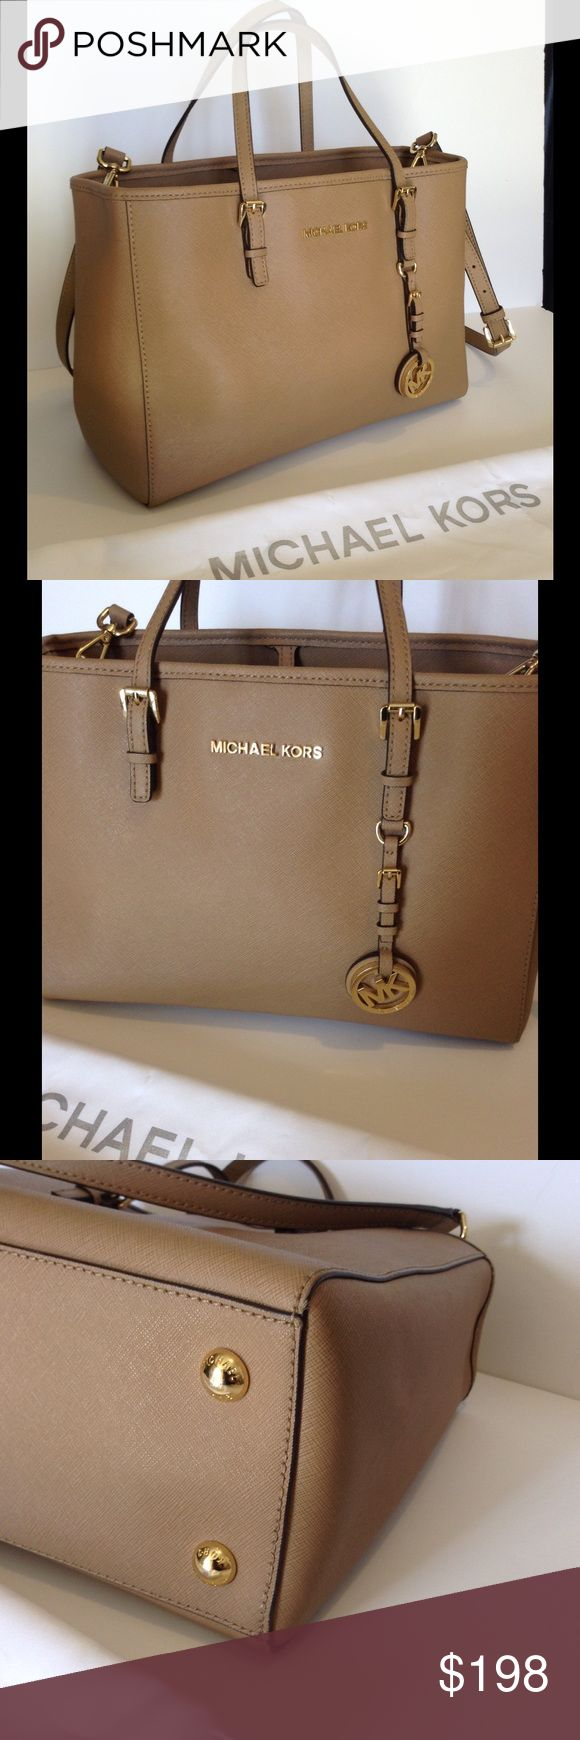 Michael Kors Jet Set East/Coast Tote Bag Lightly used! Exclusive Michael Kors Medium Tote Bag in Tan with the longer strap for shoulder or crossbody wear. Gold toned hardware. Genuine Saffiano Leather. 💯 Authentic. Michael Kors Bags